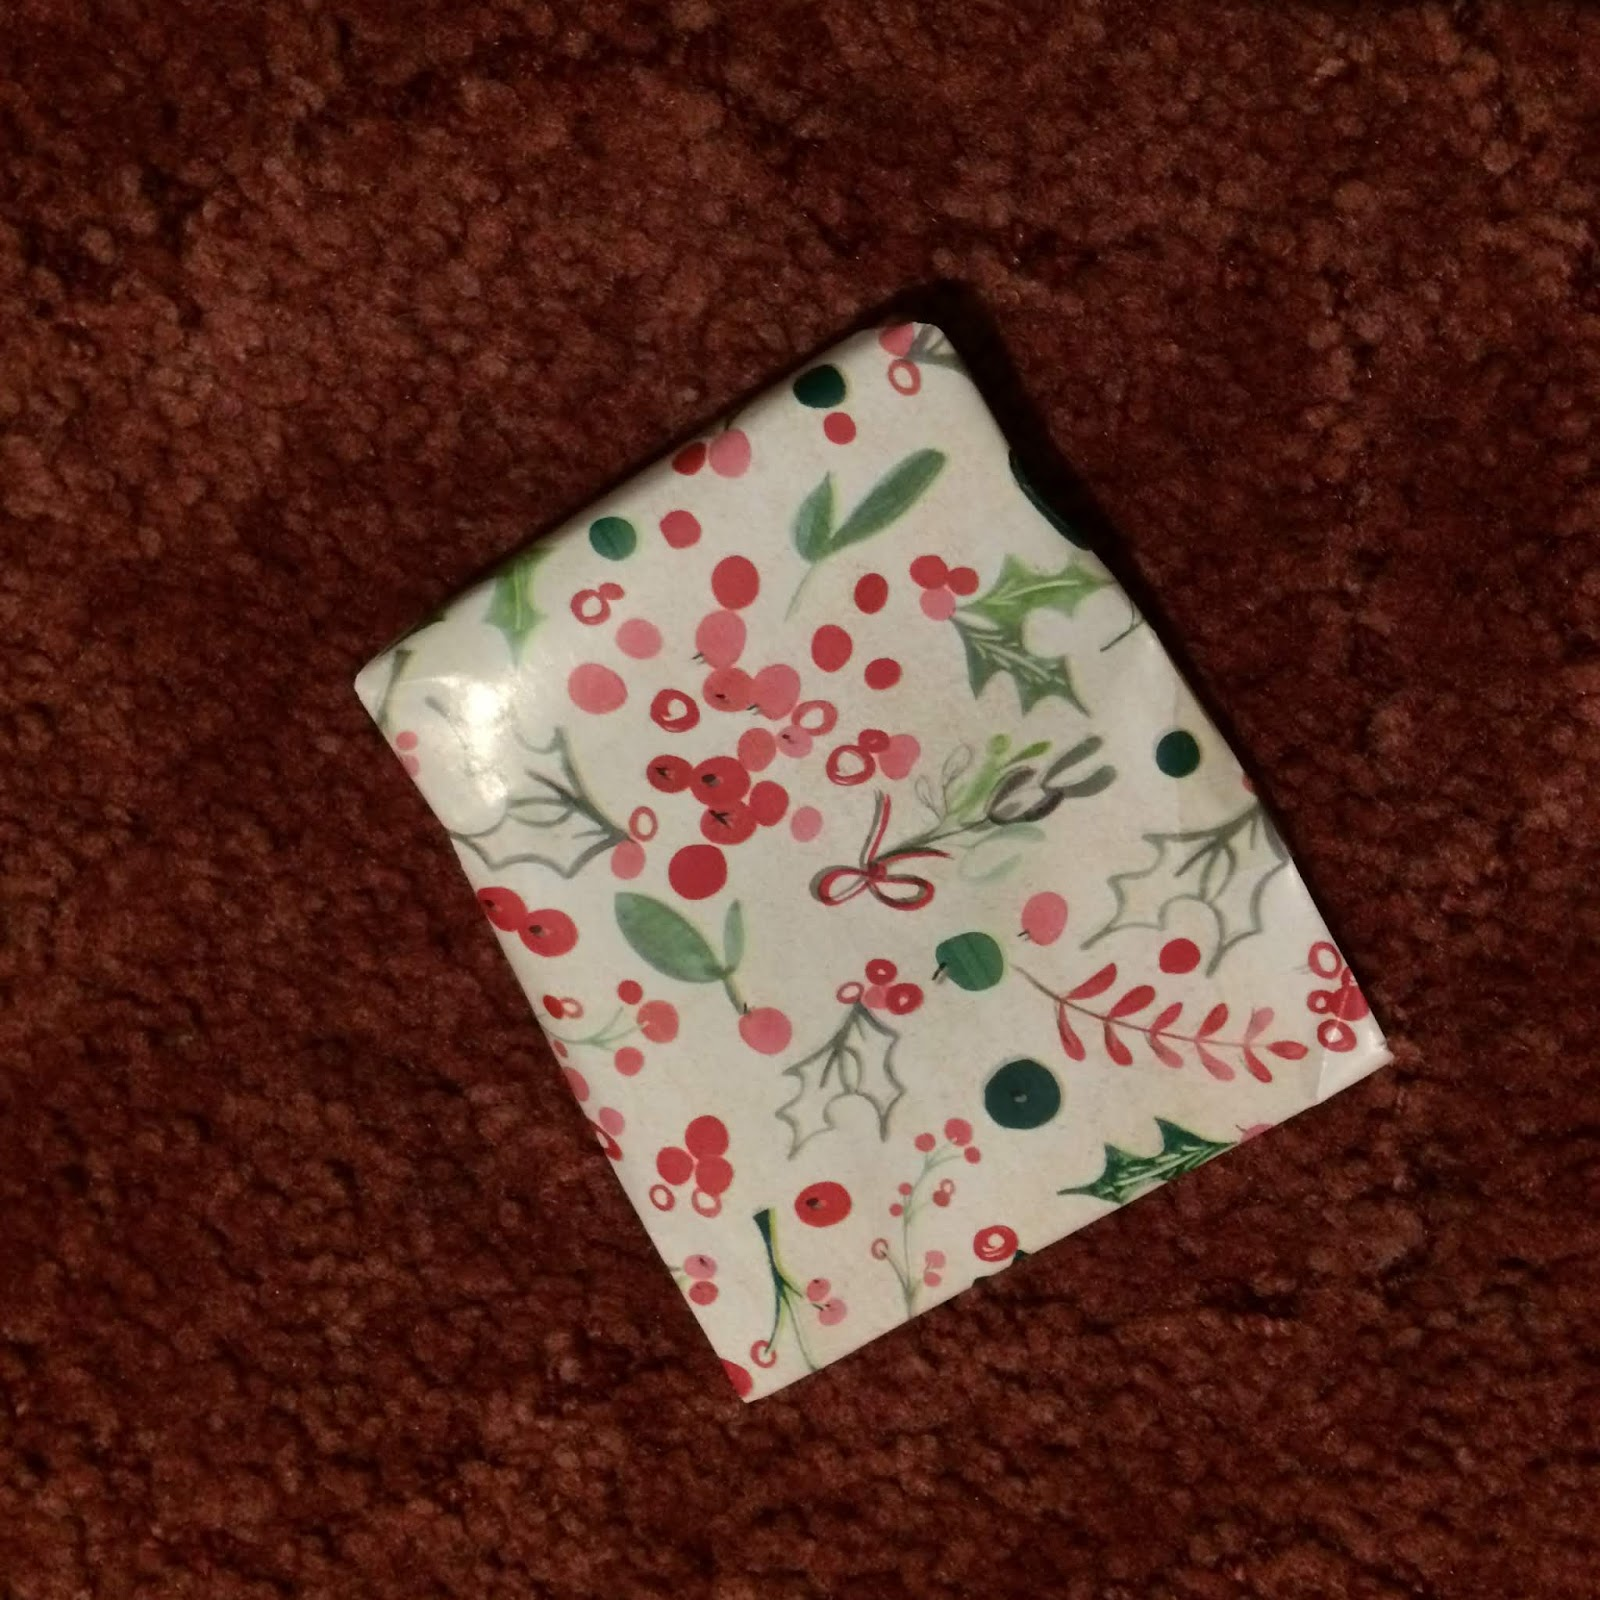 Wrapped present, no tag